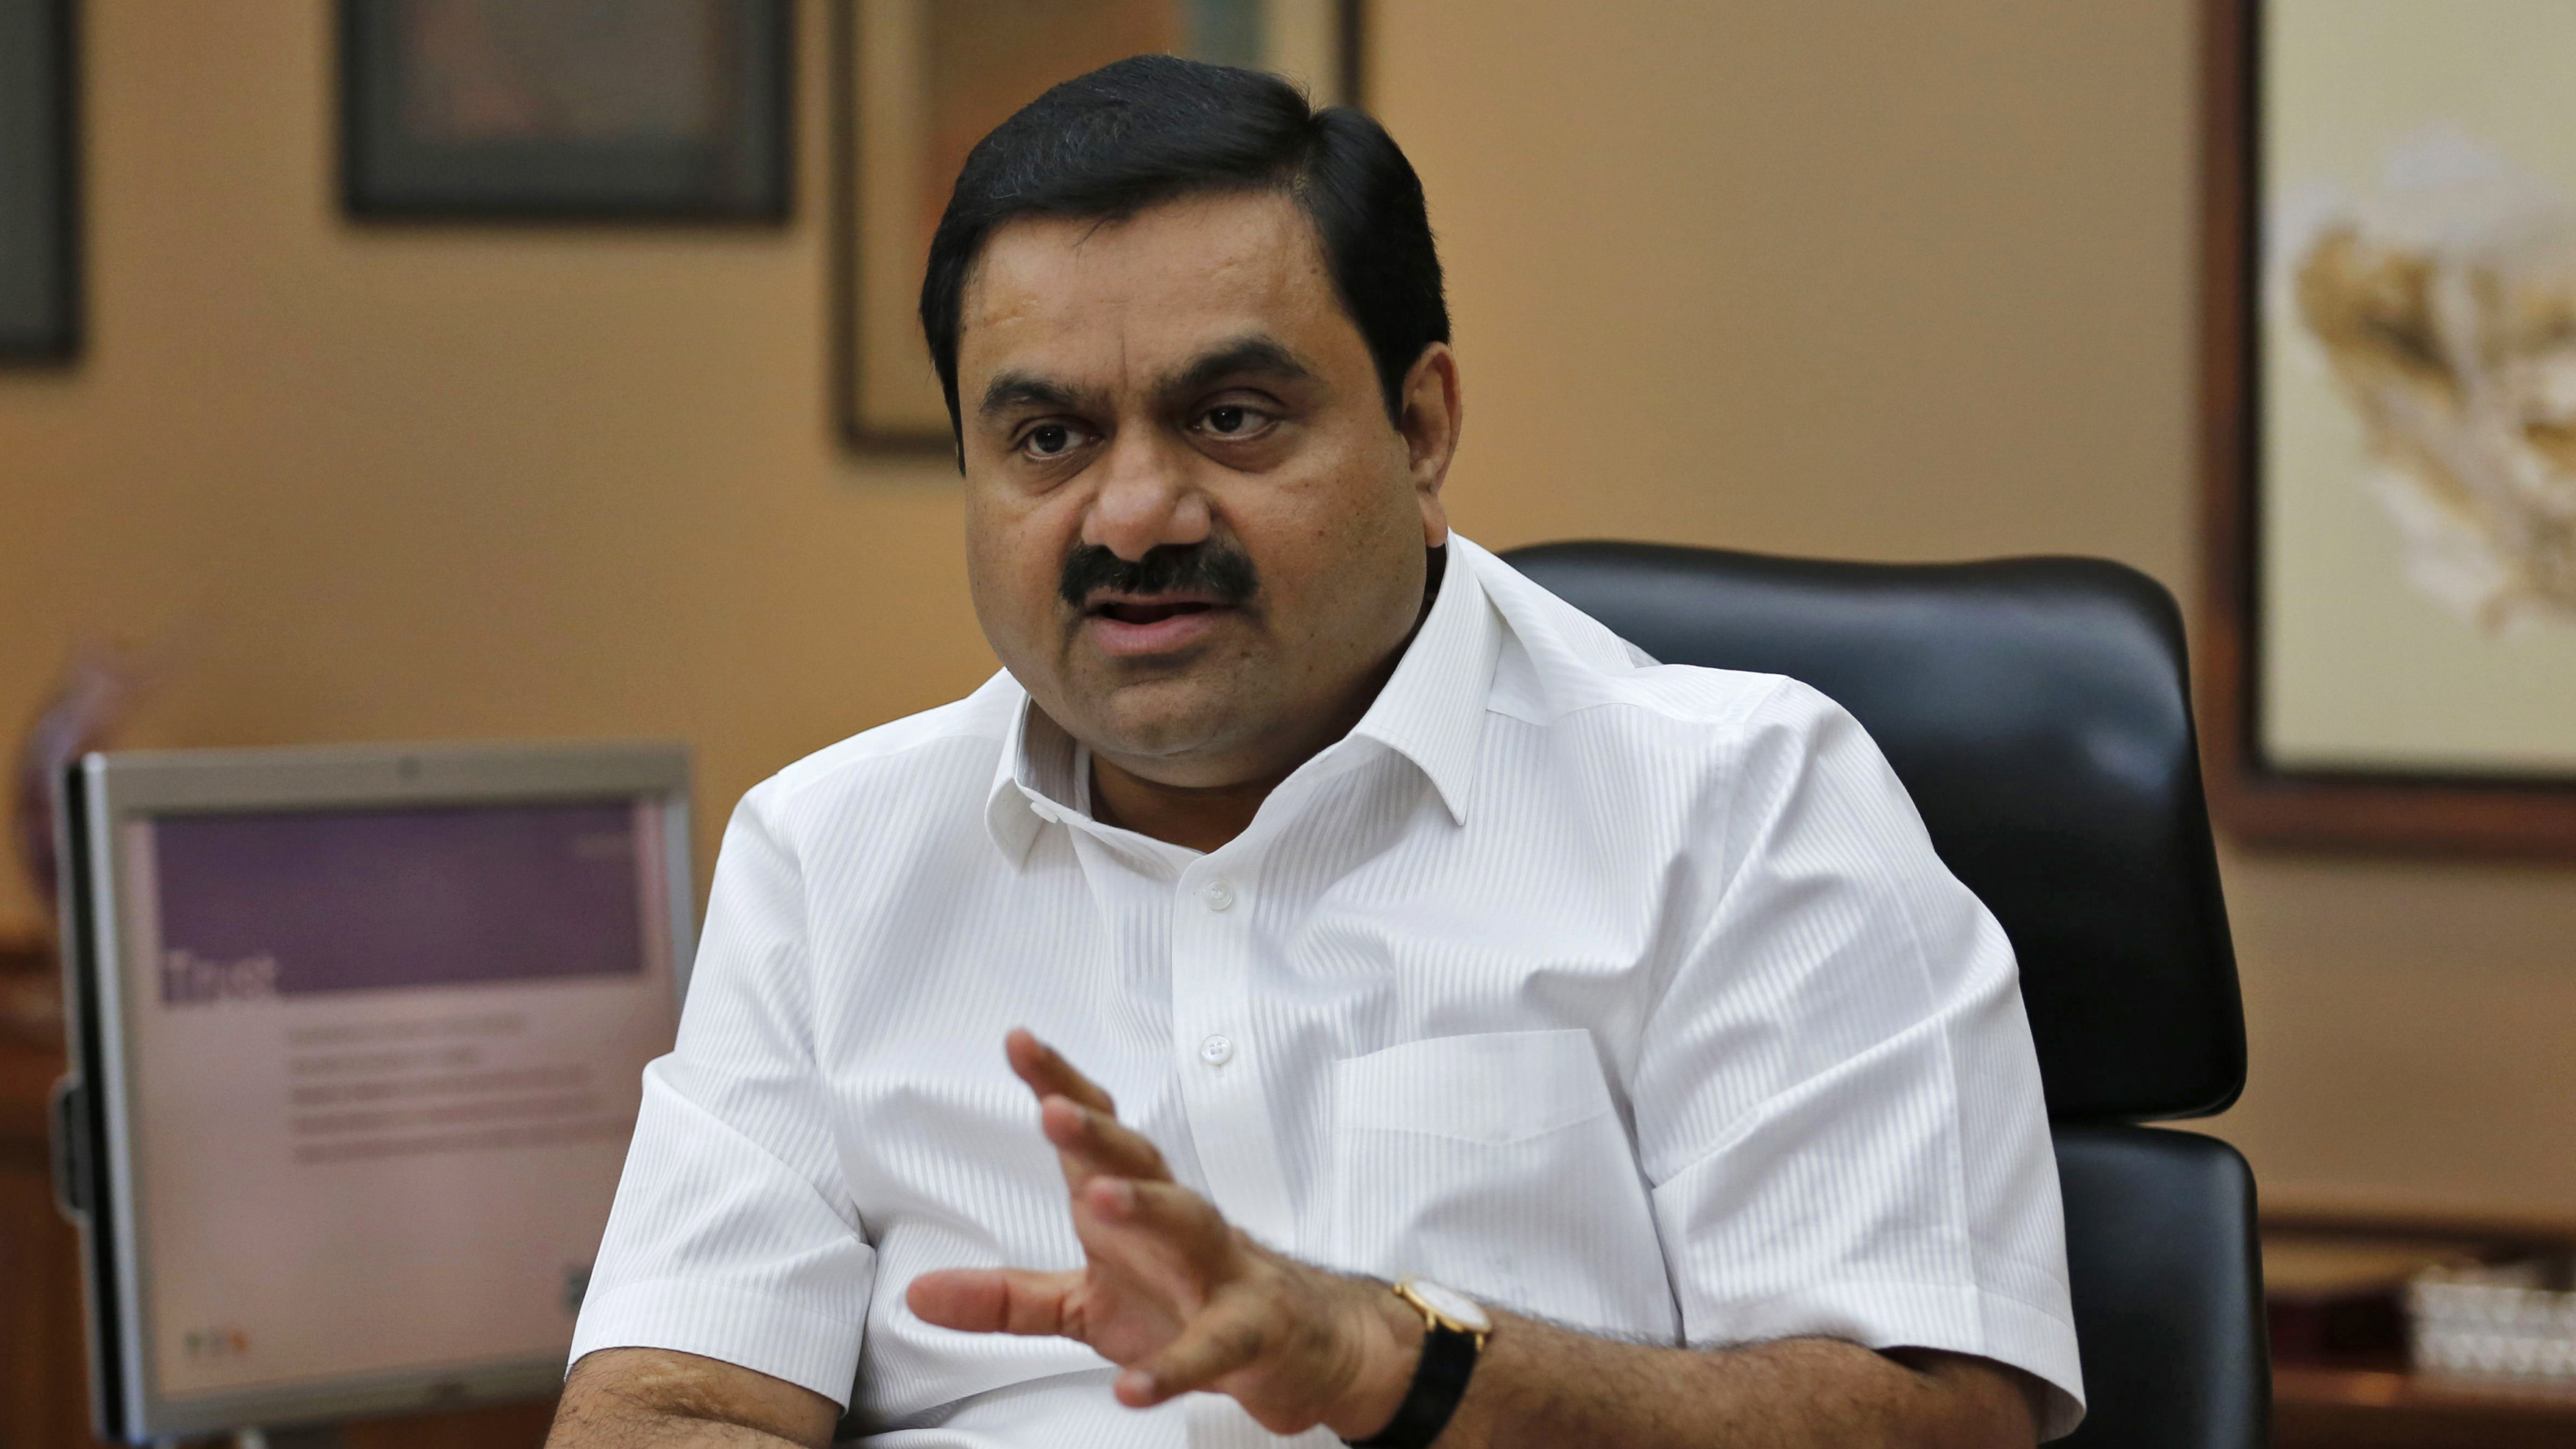 Indian billionaire Gautam Adani speaks during an interview with Reuters at his office in the western Indian city of Ahmedabad April 2, 2014. The way billionaire Indian infrastructure-builder Adani sees it, working with the government does not make him a crony-capitalist. Adani's rapid ascent to the top tier of Indian business is often associated with the rise of Narendra Modi, the Hindu nationalist opposition leader widely expected to become India's next prime minister once the country's election ends next month. Its flagship Adani Enterprises soared 22.9 percent for its biggest daily gain on Thursday and has nearly doubled since the start of February, compared with a nearly 20 percent gain in the infrastructure index.The way billionaire Indian infrastructure-builder Gautam Adani sees it, working with the government does not make him a crony-capitalist. Adani's rapid ascent to the top tier of Indian business is often associated with the rise of Narendra Modi, the Hindu nationalist opposition leader widely expected to become India's next prime minister once the country's election ends next month. Its flagship Adani Enterprises soared 22.9 percent for its biggest daily gain on Thursday and has nearly doubled since the start of February, compared with a nearly 20 percent gain in the infrastructure index. Picture taken April 2, 2014. REUTERS/Amit Dave (INDIA - Tags: ENERGY BUSINESS) - RTR3KP86